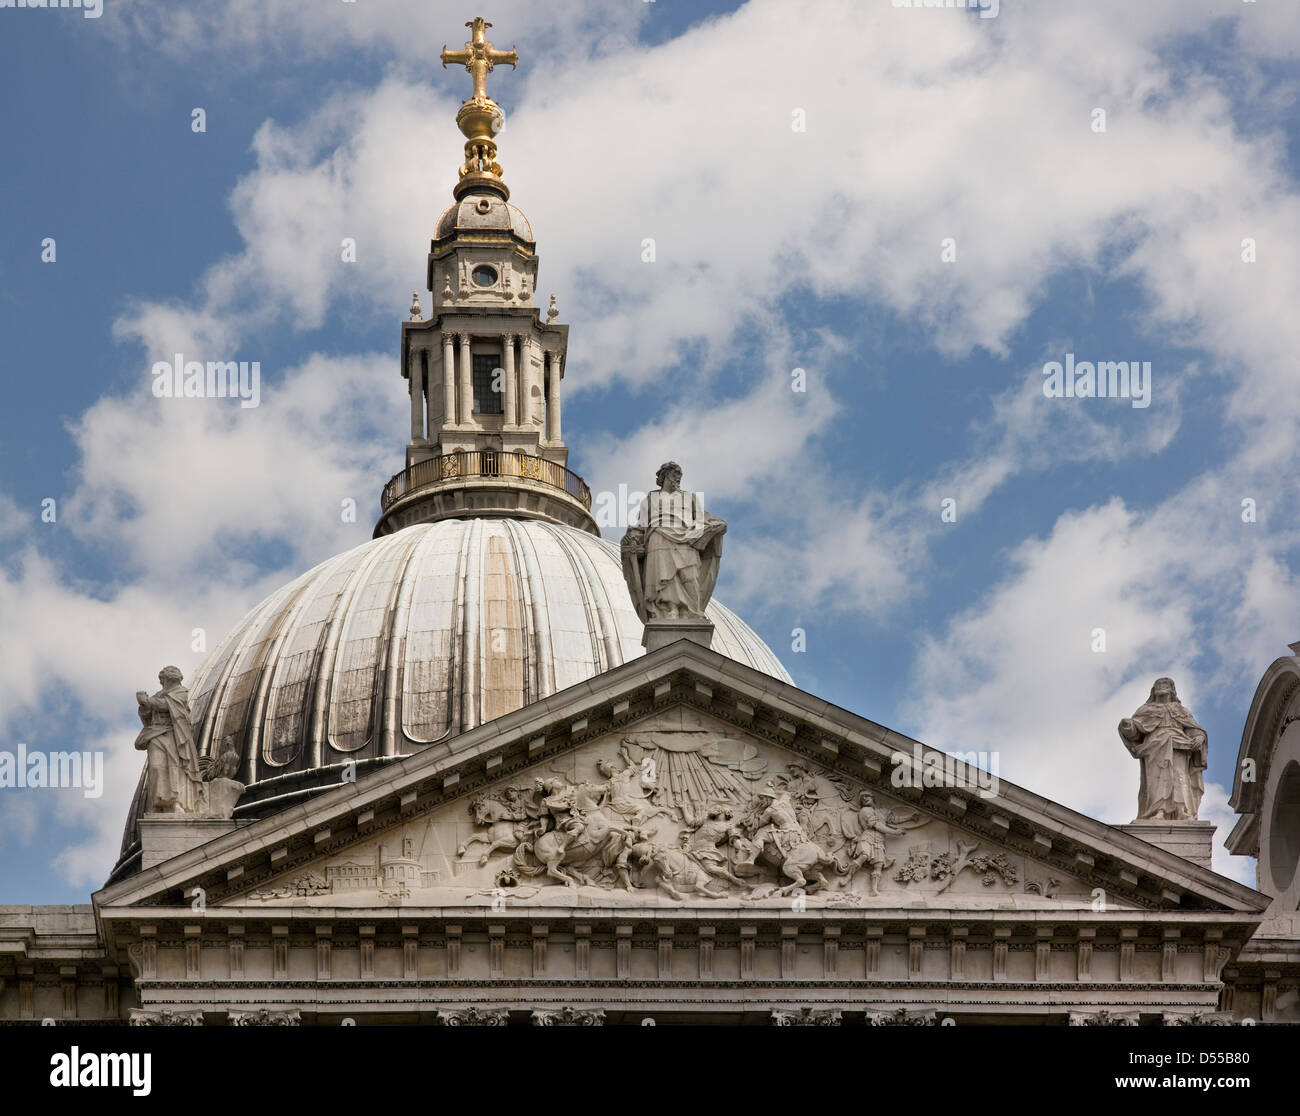 Saint Paul's Cathedral, London dome & pediment - Stock Image